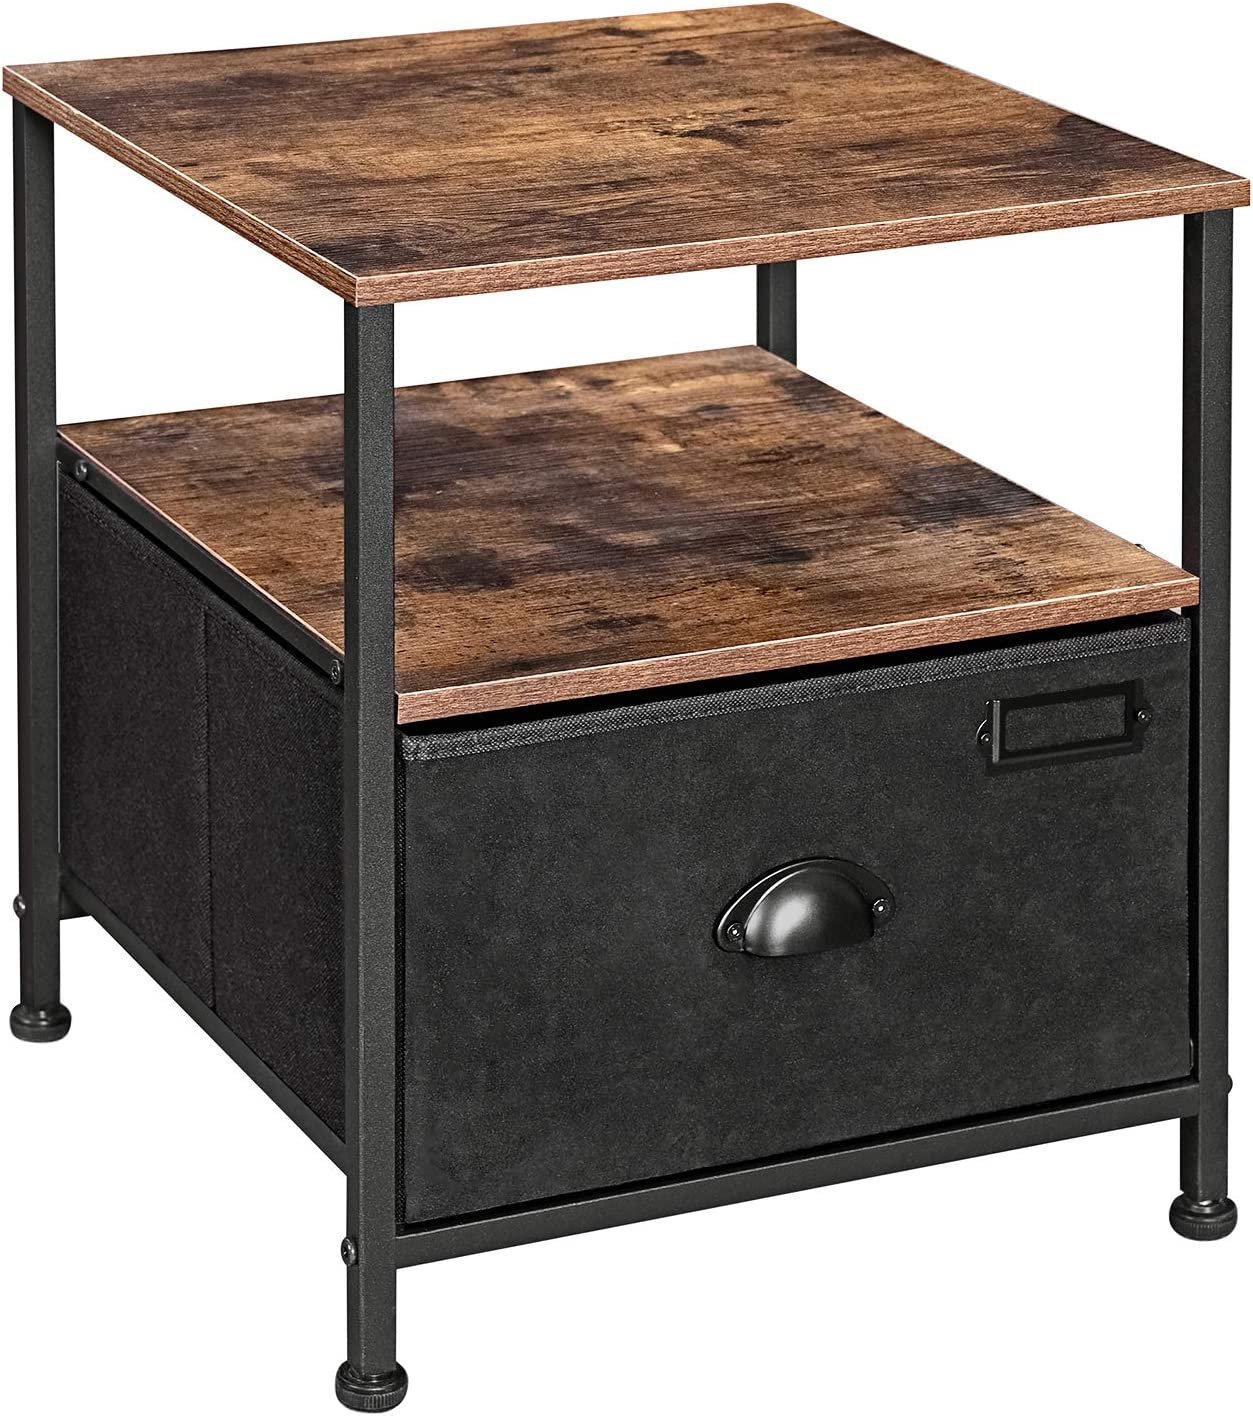 SONGMICS Nightstand, 3-Tier Bedside Table with Drawer, 2 Shelves, Fabric Drawer Dresser, Industrial End Table, for, Hallway, Closet, Rustic Brown and Black ULVT02H